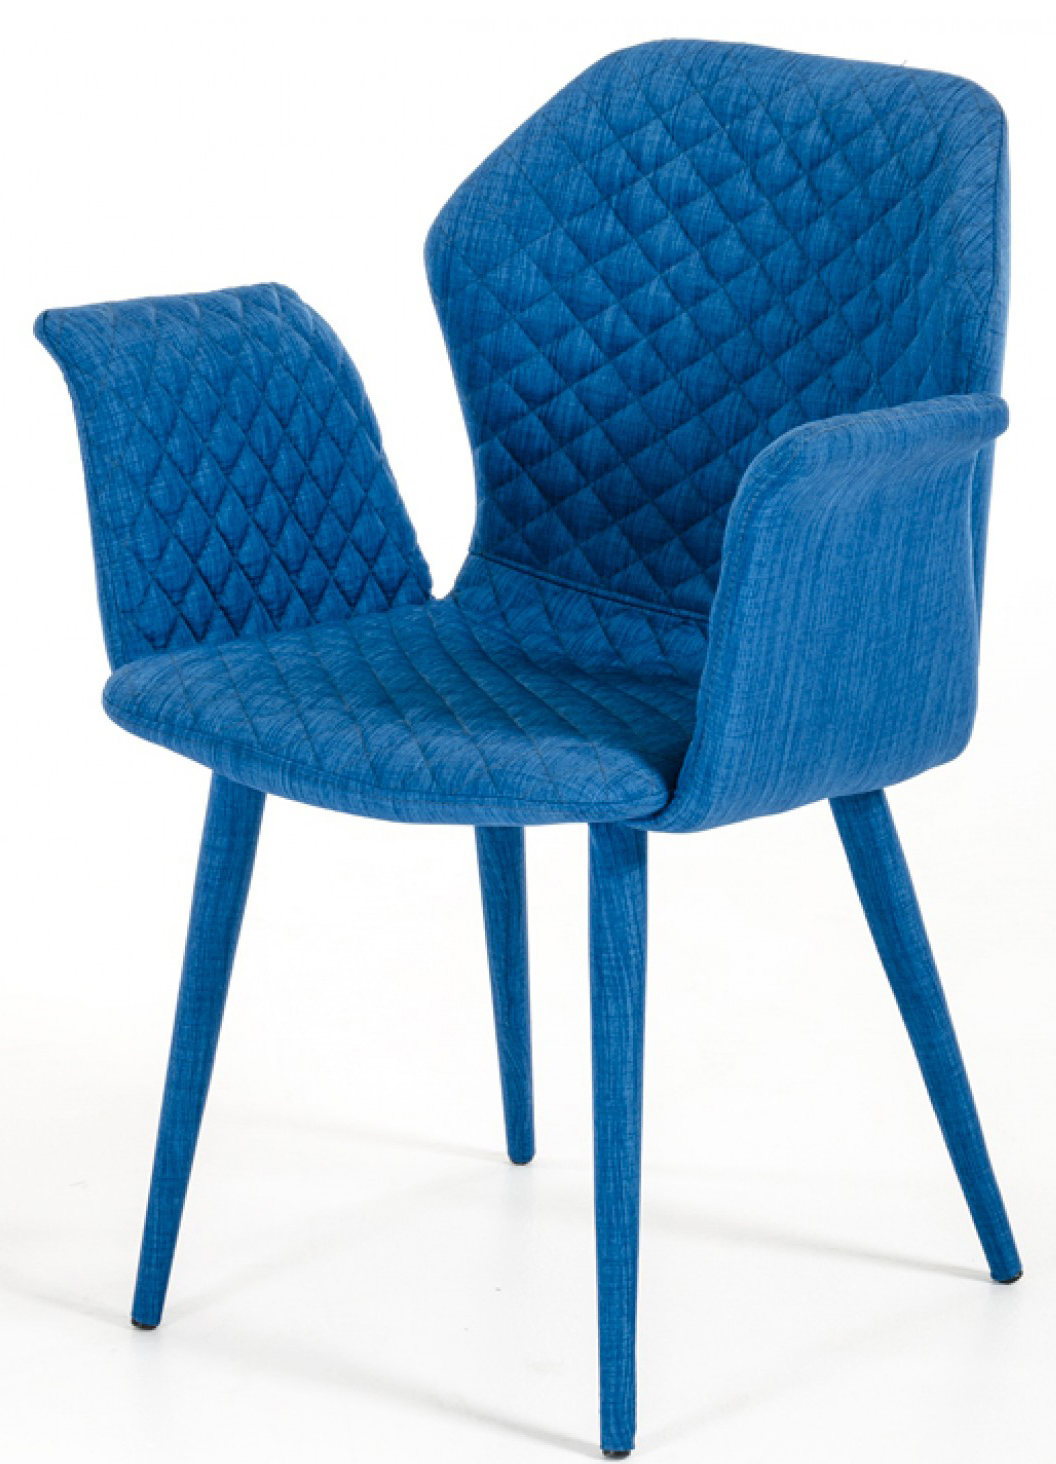 Picture of: Adamo Blue Upholstered Dining Chair Blue Fabric Dining Chair